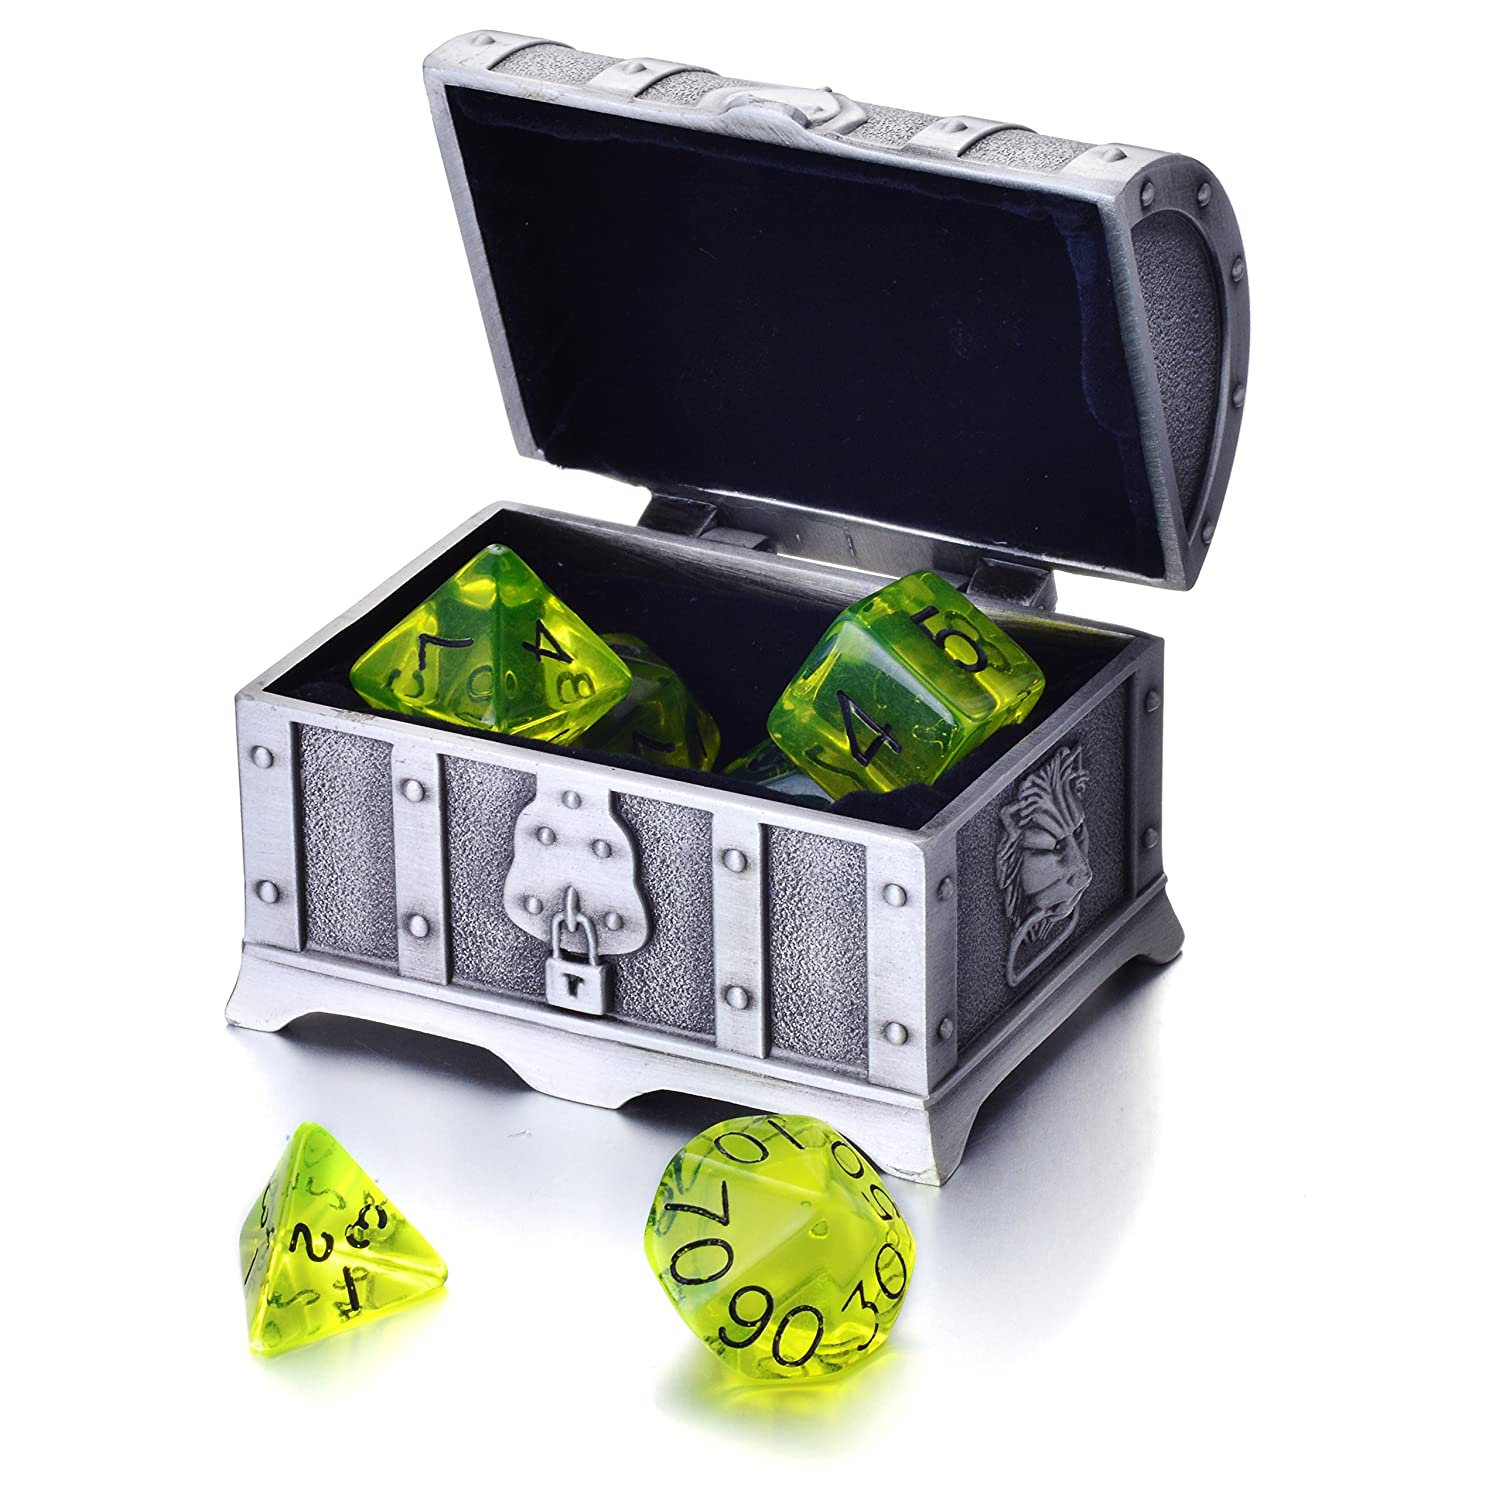 【激安セール】 REINDEAR 7 Die Polyhedral Role Playing Polyhedral Game Die Dice Set Role with Treasure Chest Diceコンテナ(透明オリーブグリーン) B071168TW3, daily-3:ae539f02 --- arianechie.dominiotemporario.com